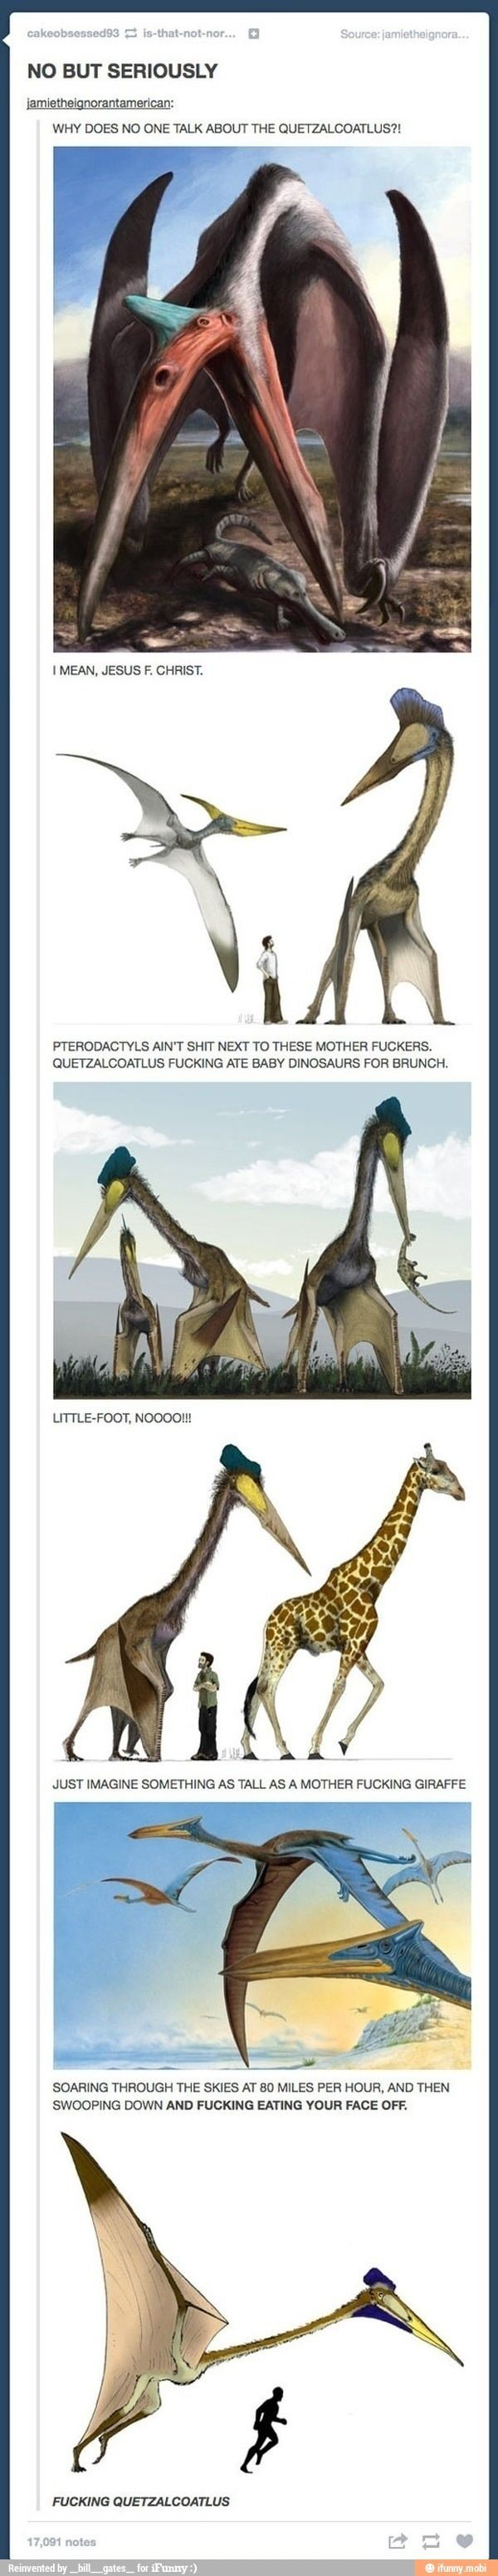 Why is it the Quetzalcoatlus? How does a scientist see this shit and not immediately think of a freaking dragon? Or the things from the Blue Avatar Movie??